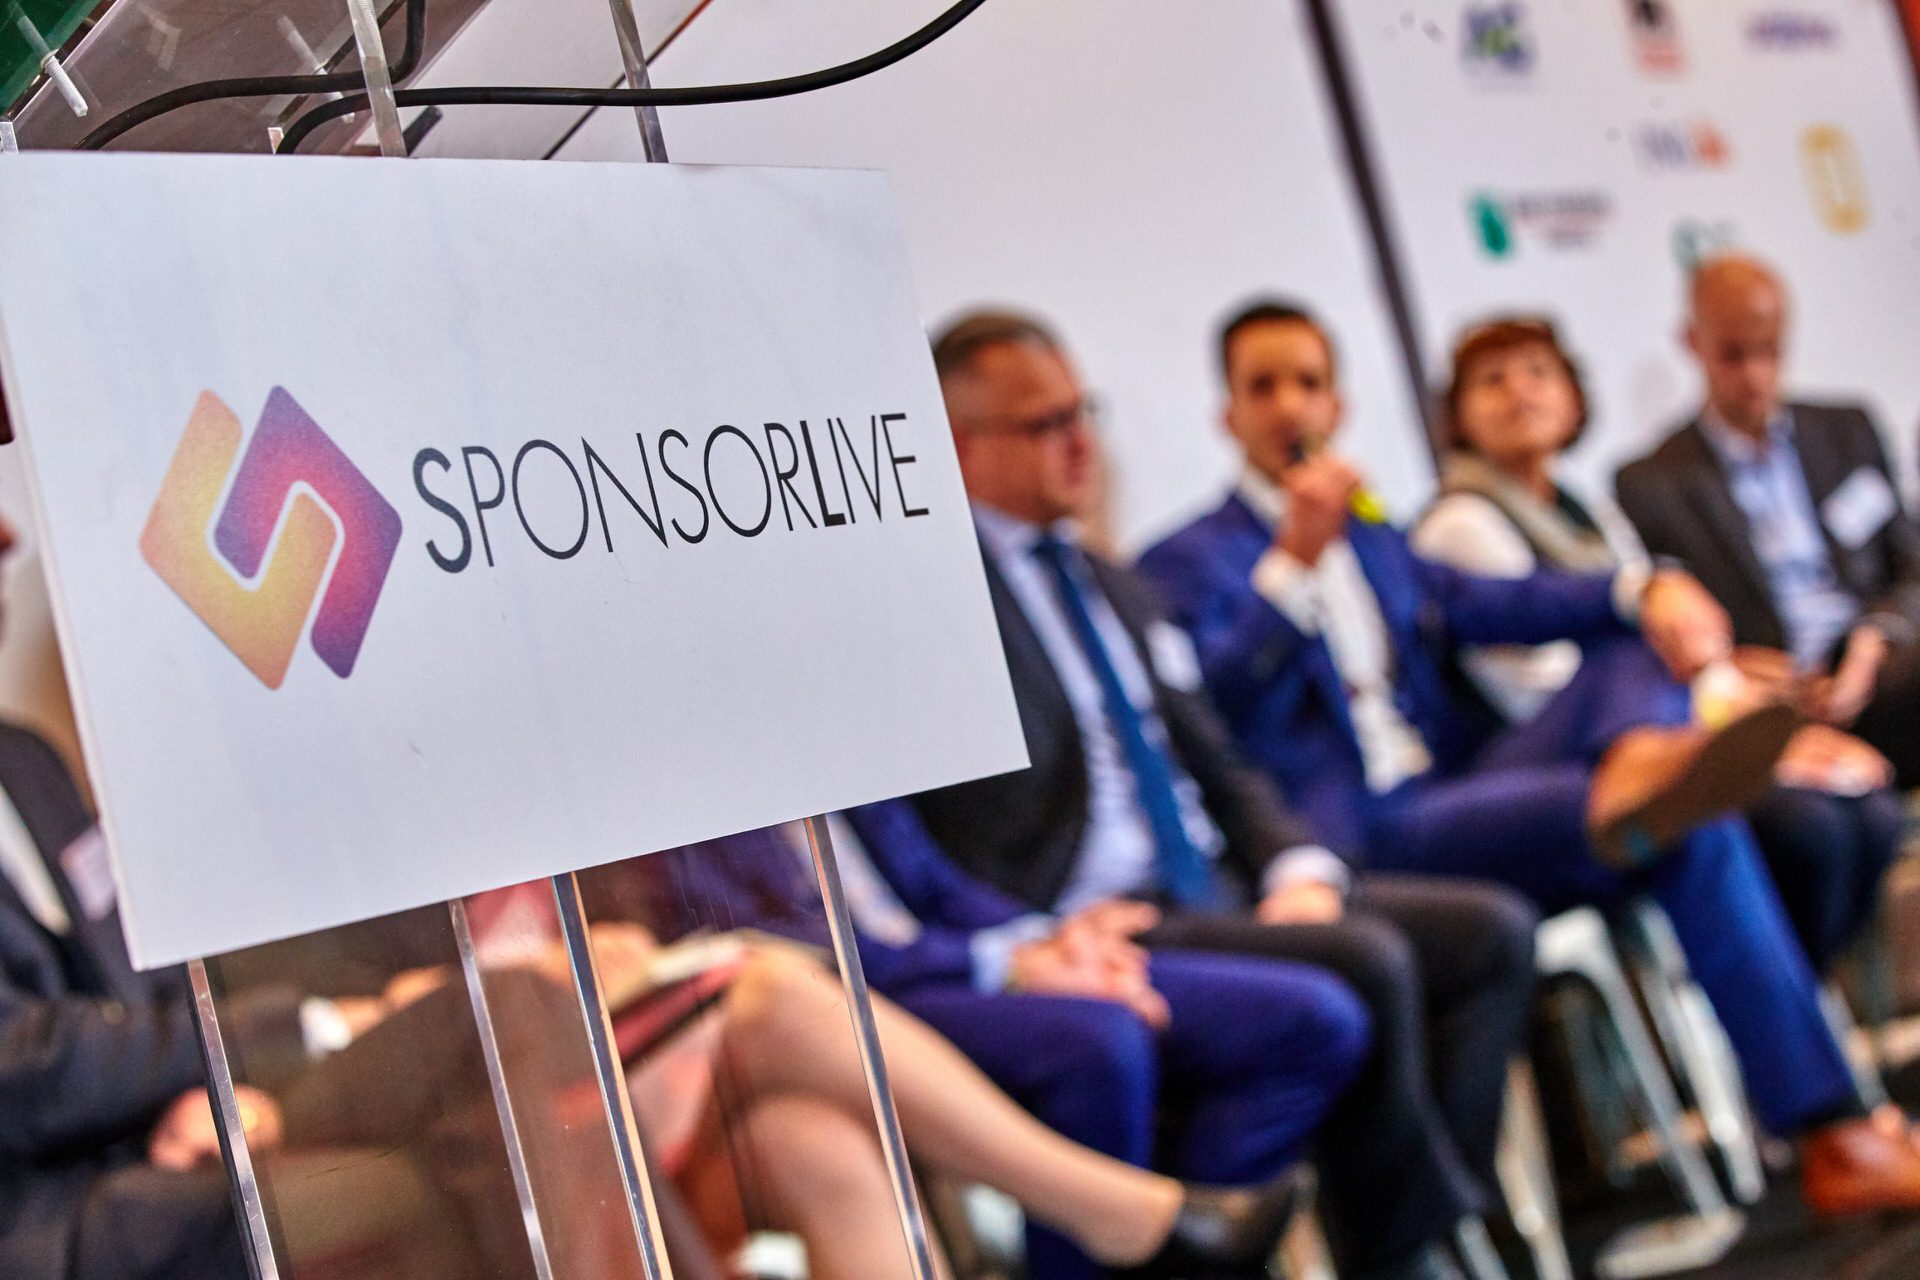 Panel discussion during SponsorLive